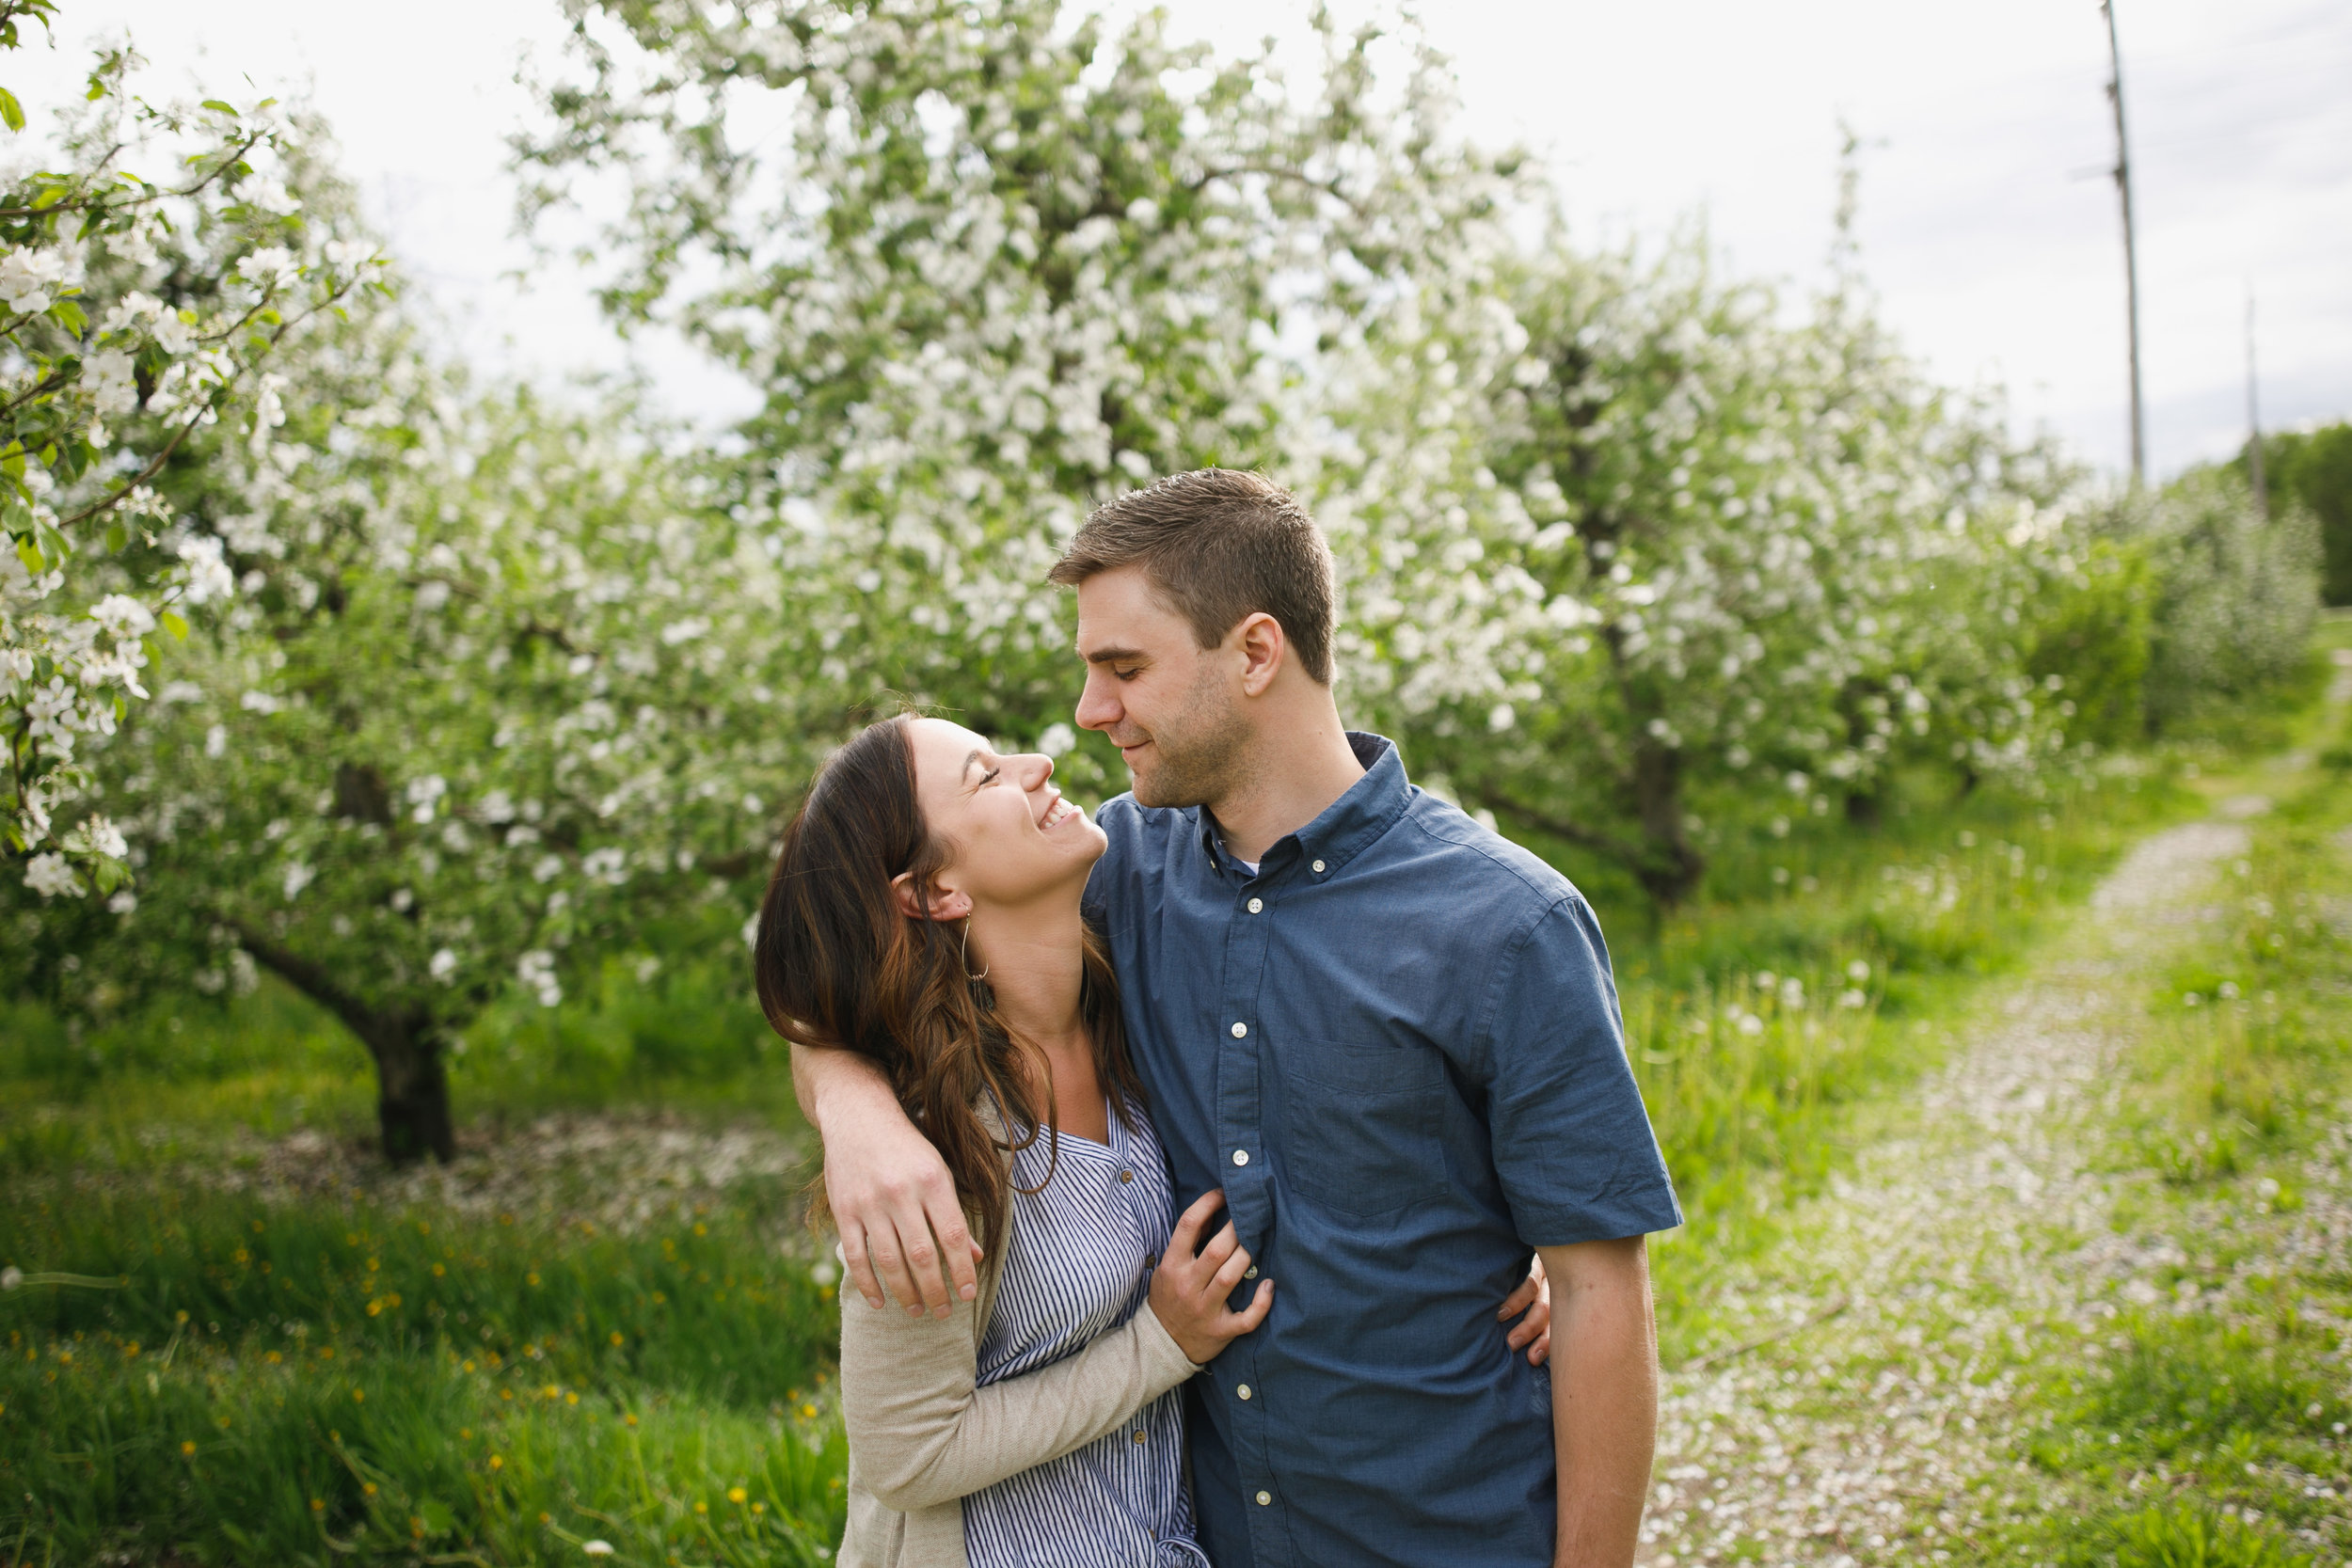 Grand Rapids Photographer - grand rapids wedding photographer - brian and katie engaged - apple blossoms - engagement session - jessica darling - sparta michigan - michigan wedding photographer- J Darling Photo003.jpg